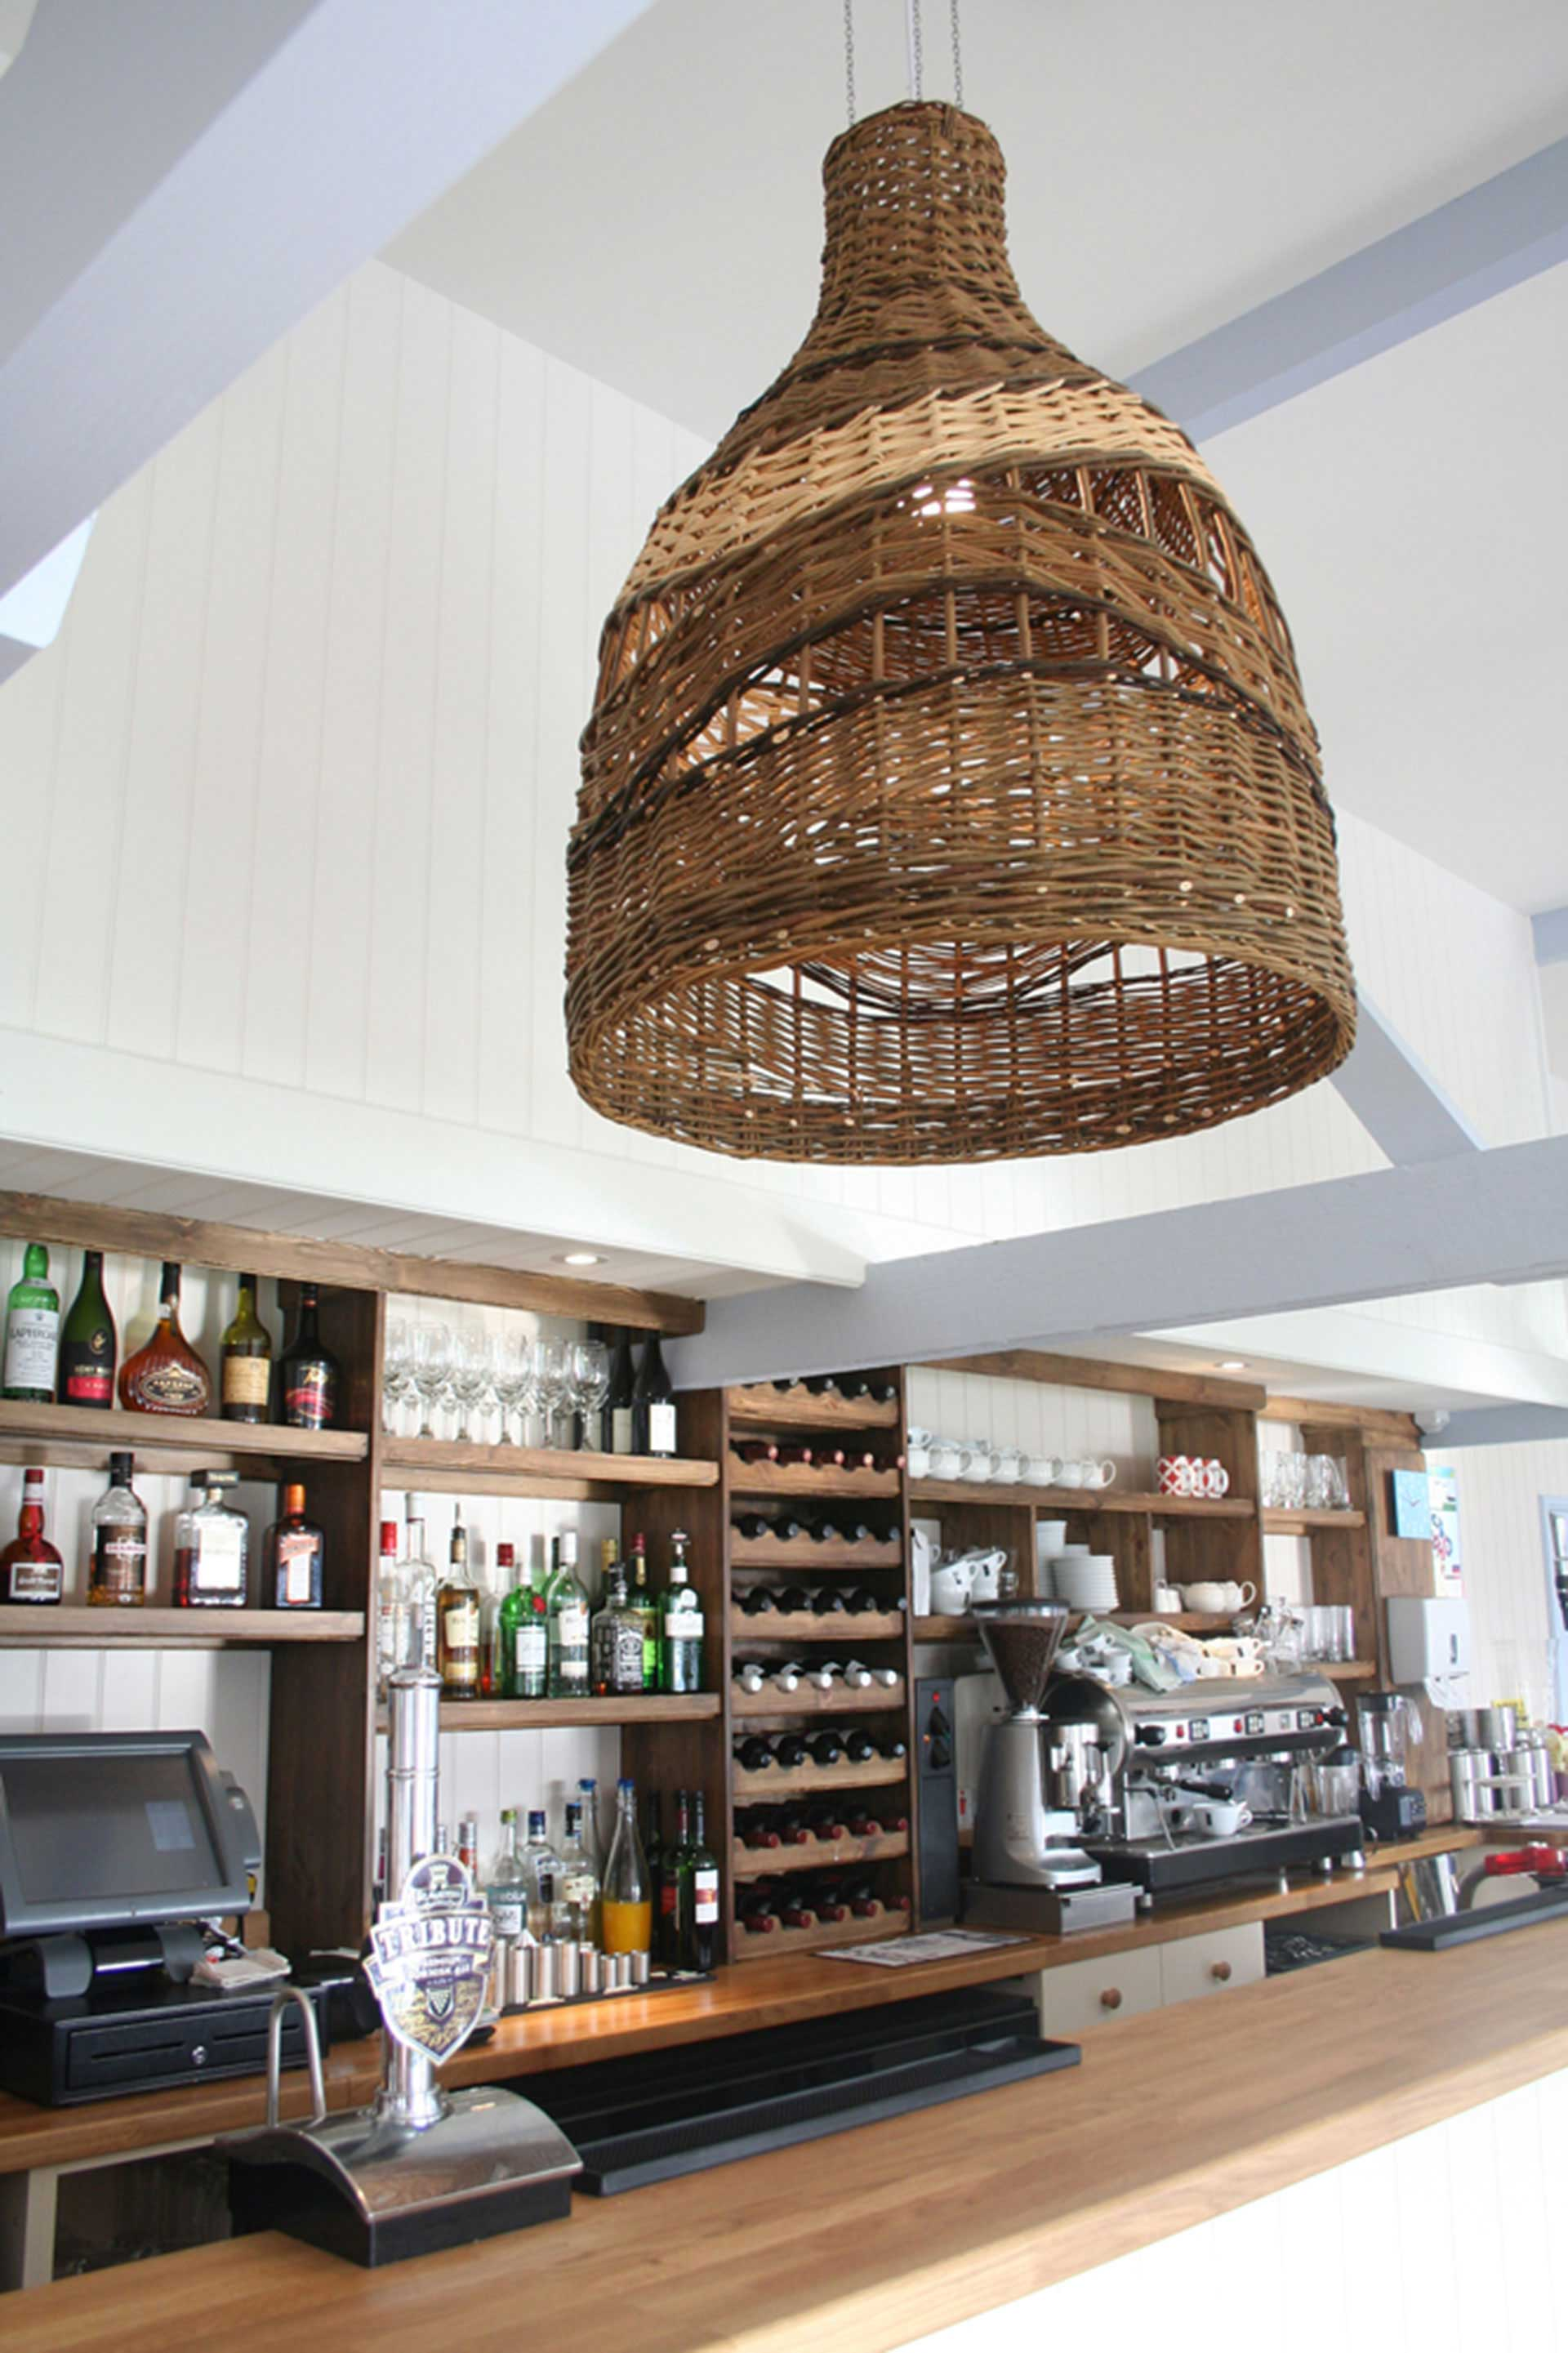 Handcrafted wicker light shade suspended over counter